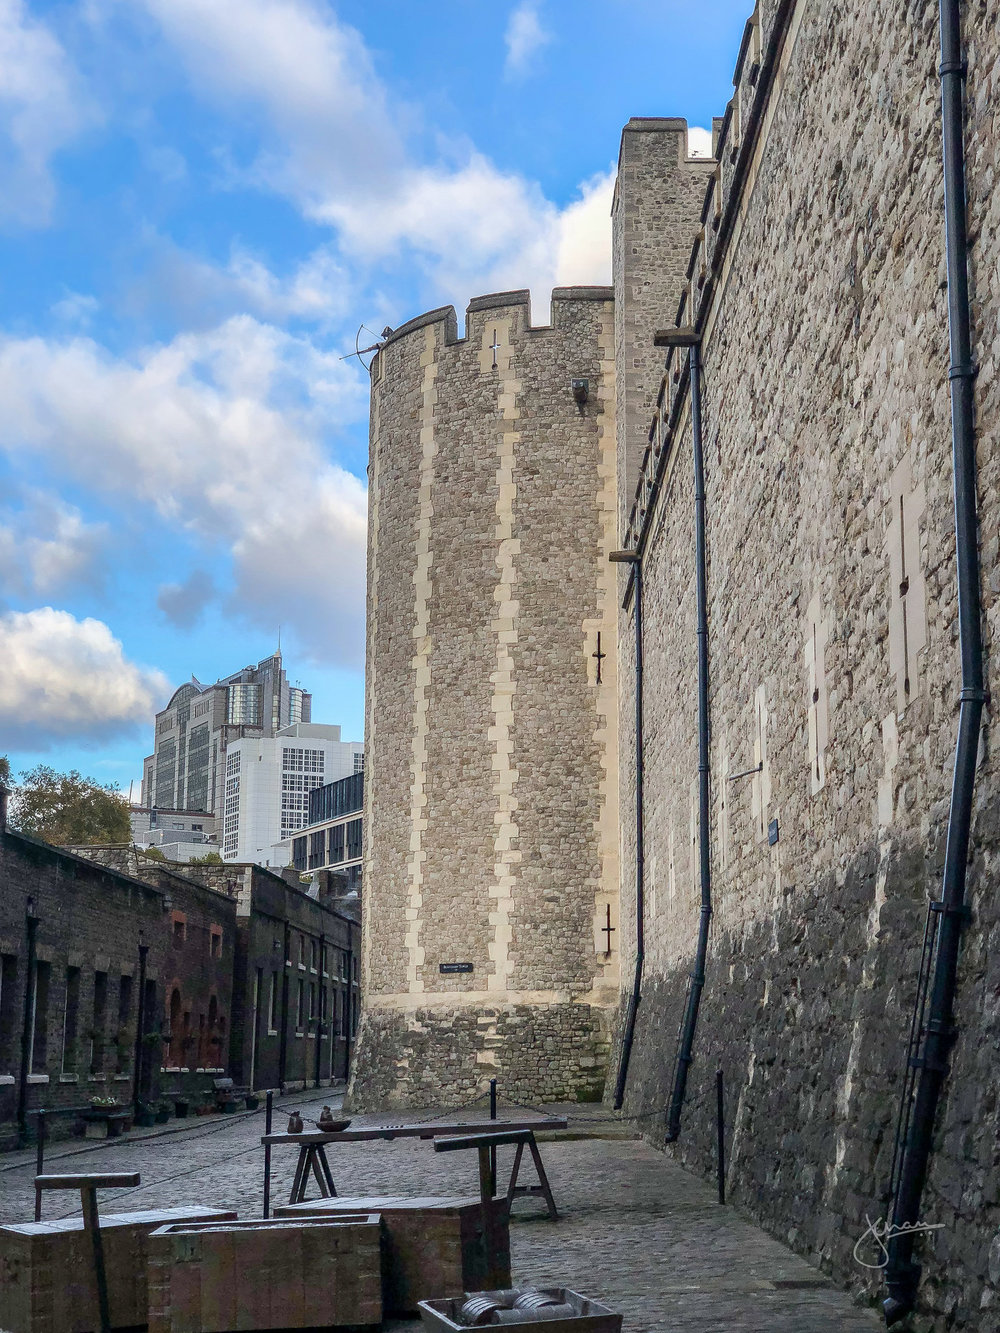 Inside the Walls of Tower of London